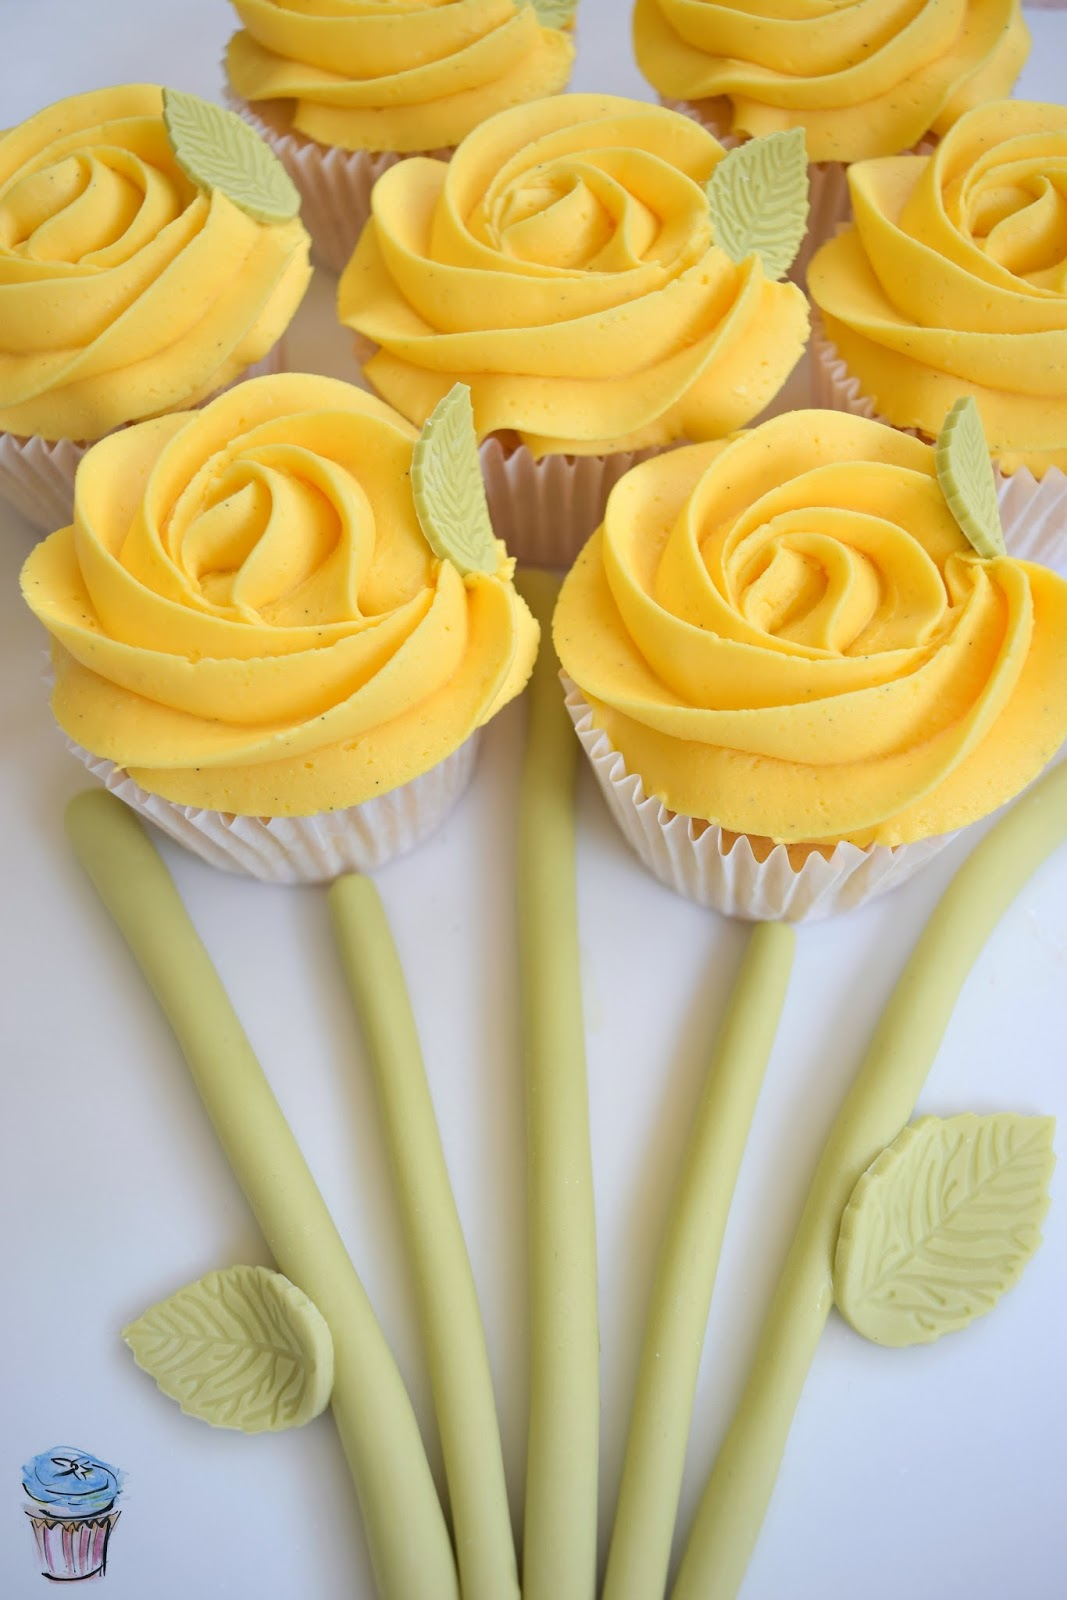 Spring cupcakes with yellow rose pipped buttercream for Mother's Day